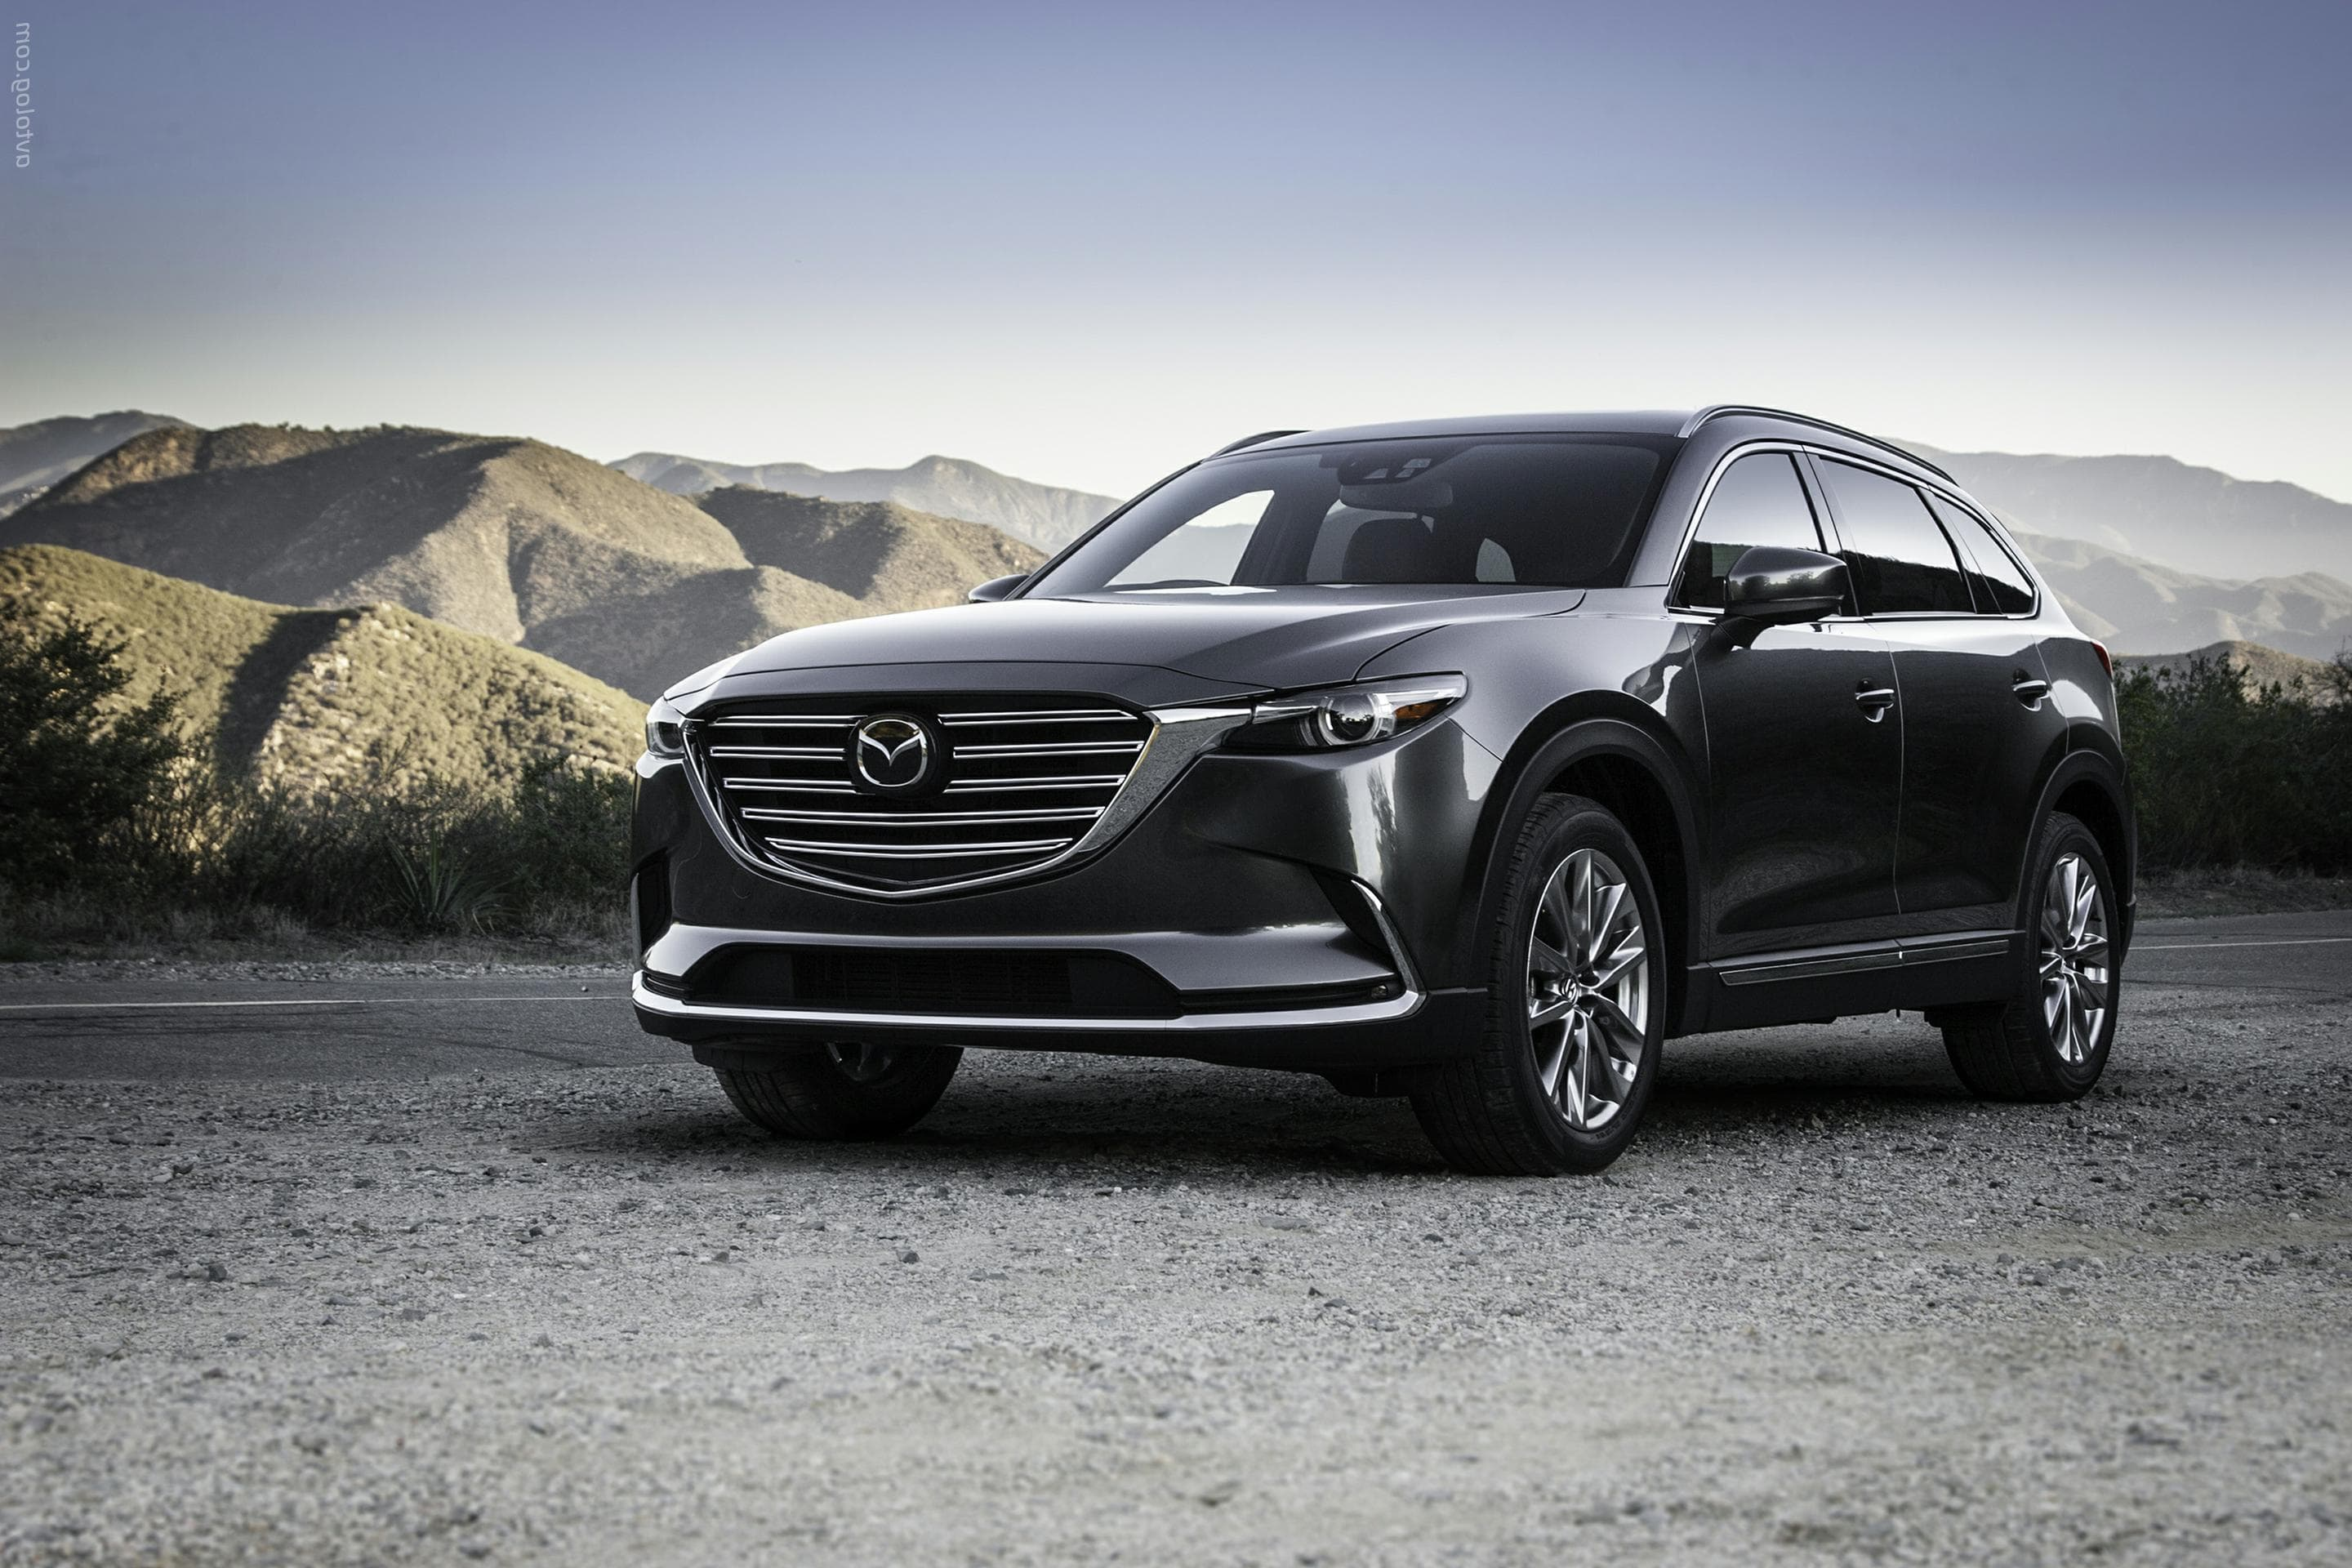 Tv Wallpaper Hd 2016 Mazda Cx 9 Wallpapers Hd High Quality Resolution Download